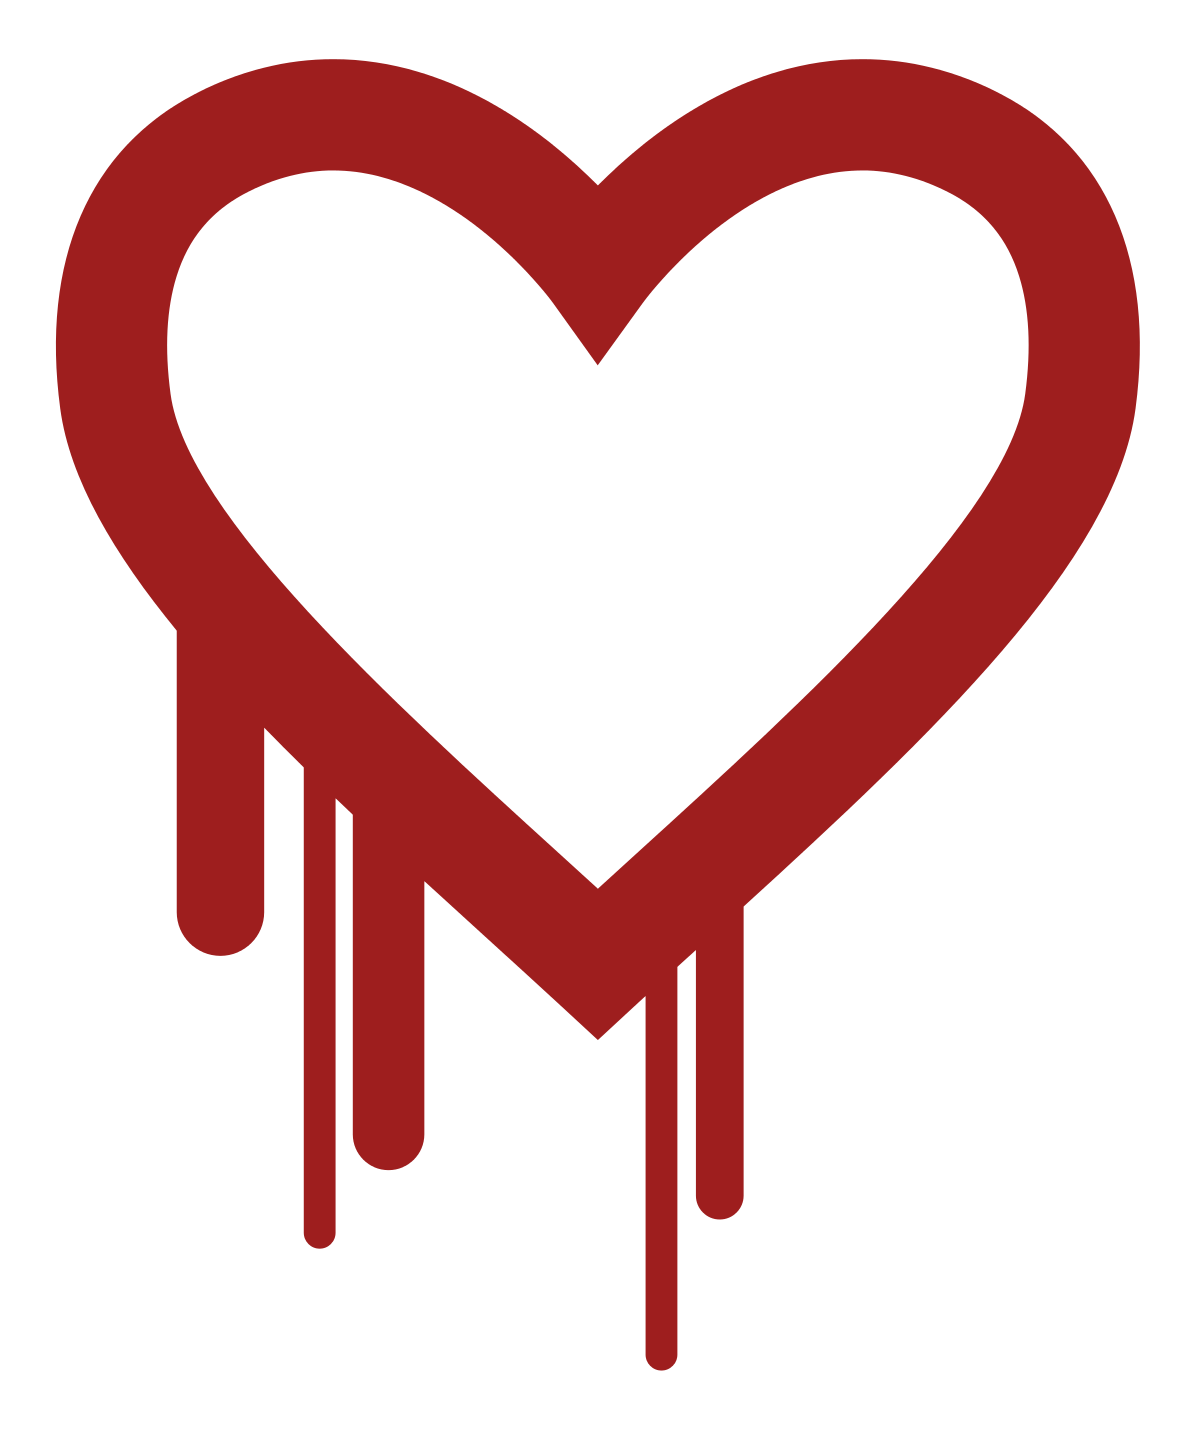 Heartbleed wikipedia . Heat clipart multiple heart